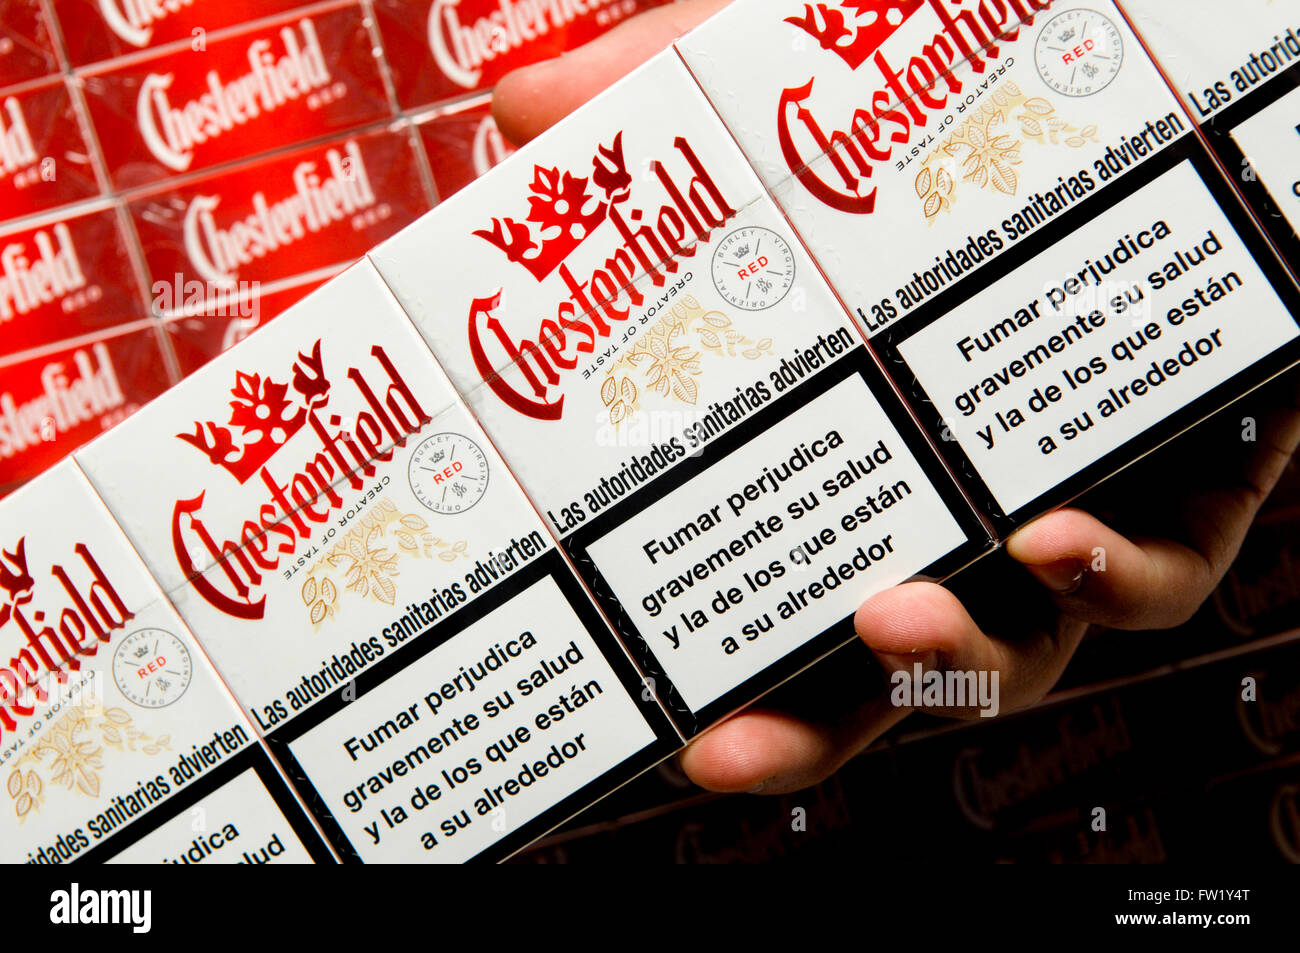 chesterfield cigarette photos chesterfield cigarette images alamy. Black Bedroom Furniture Sets. Home Design Ideas